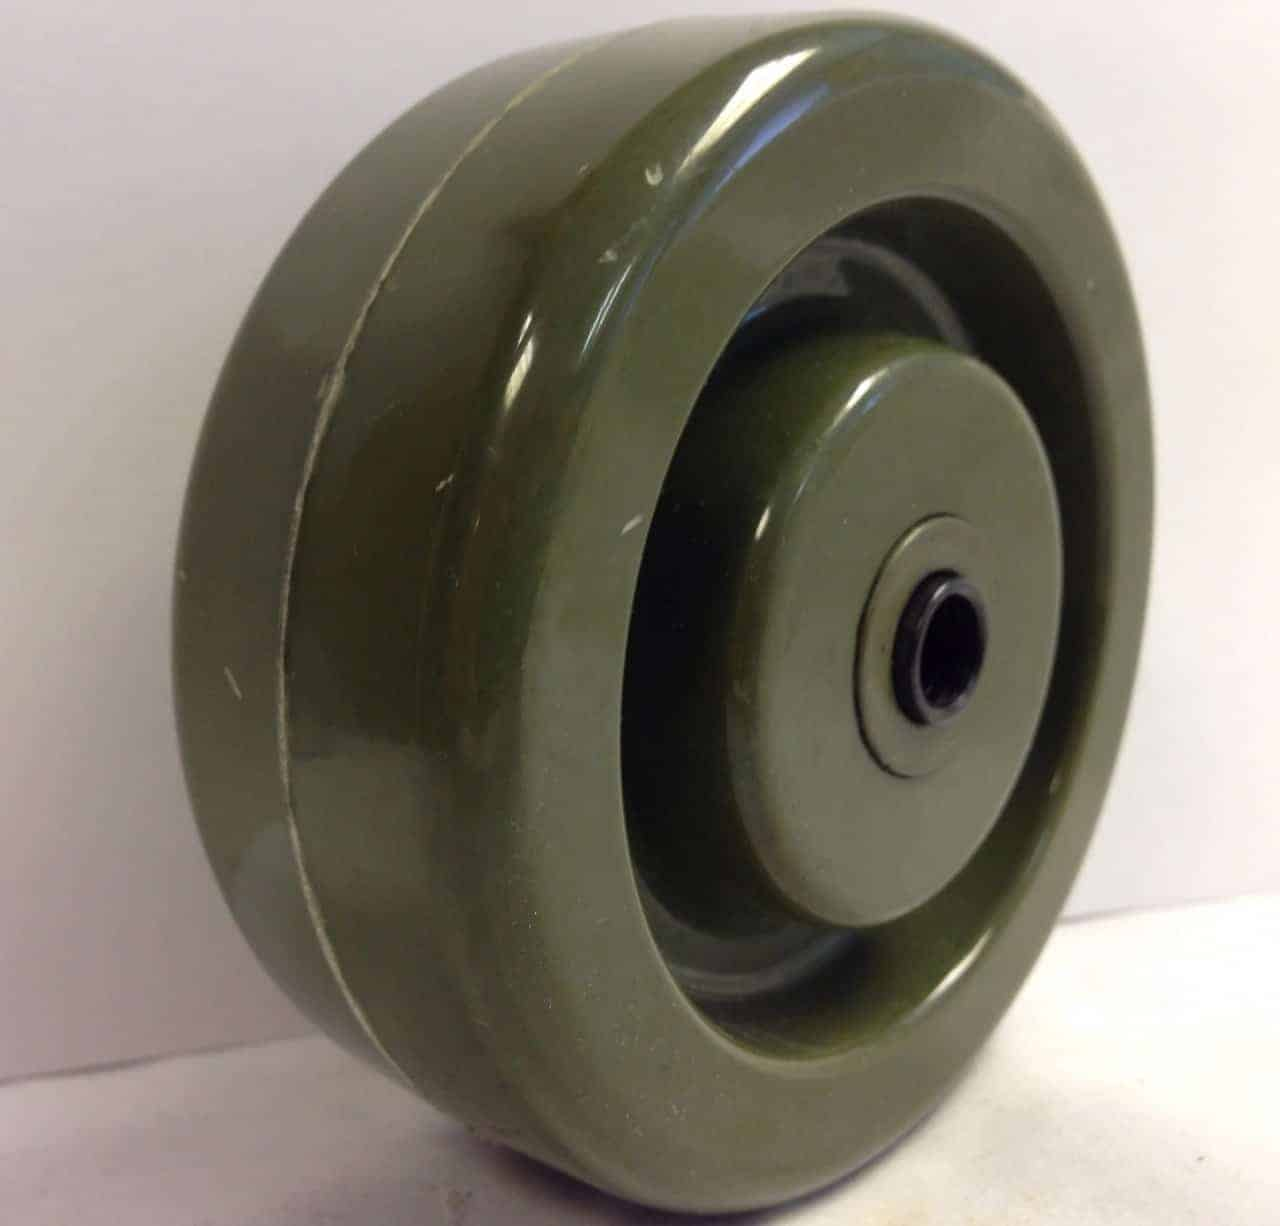 4″ High-Temperature Epoxy With 3/8″ Precision Ball Bearing 1-5/8″ Hub 700 Lbs Capacity